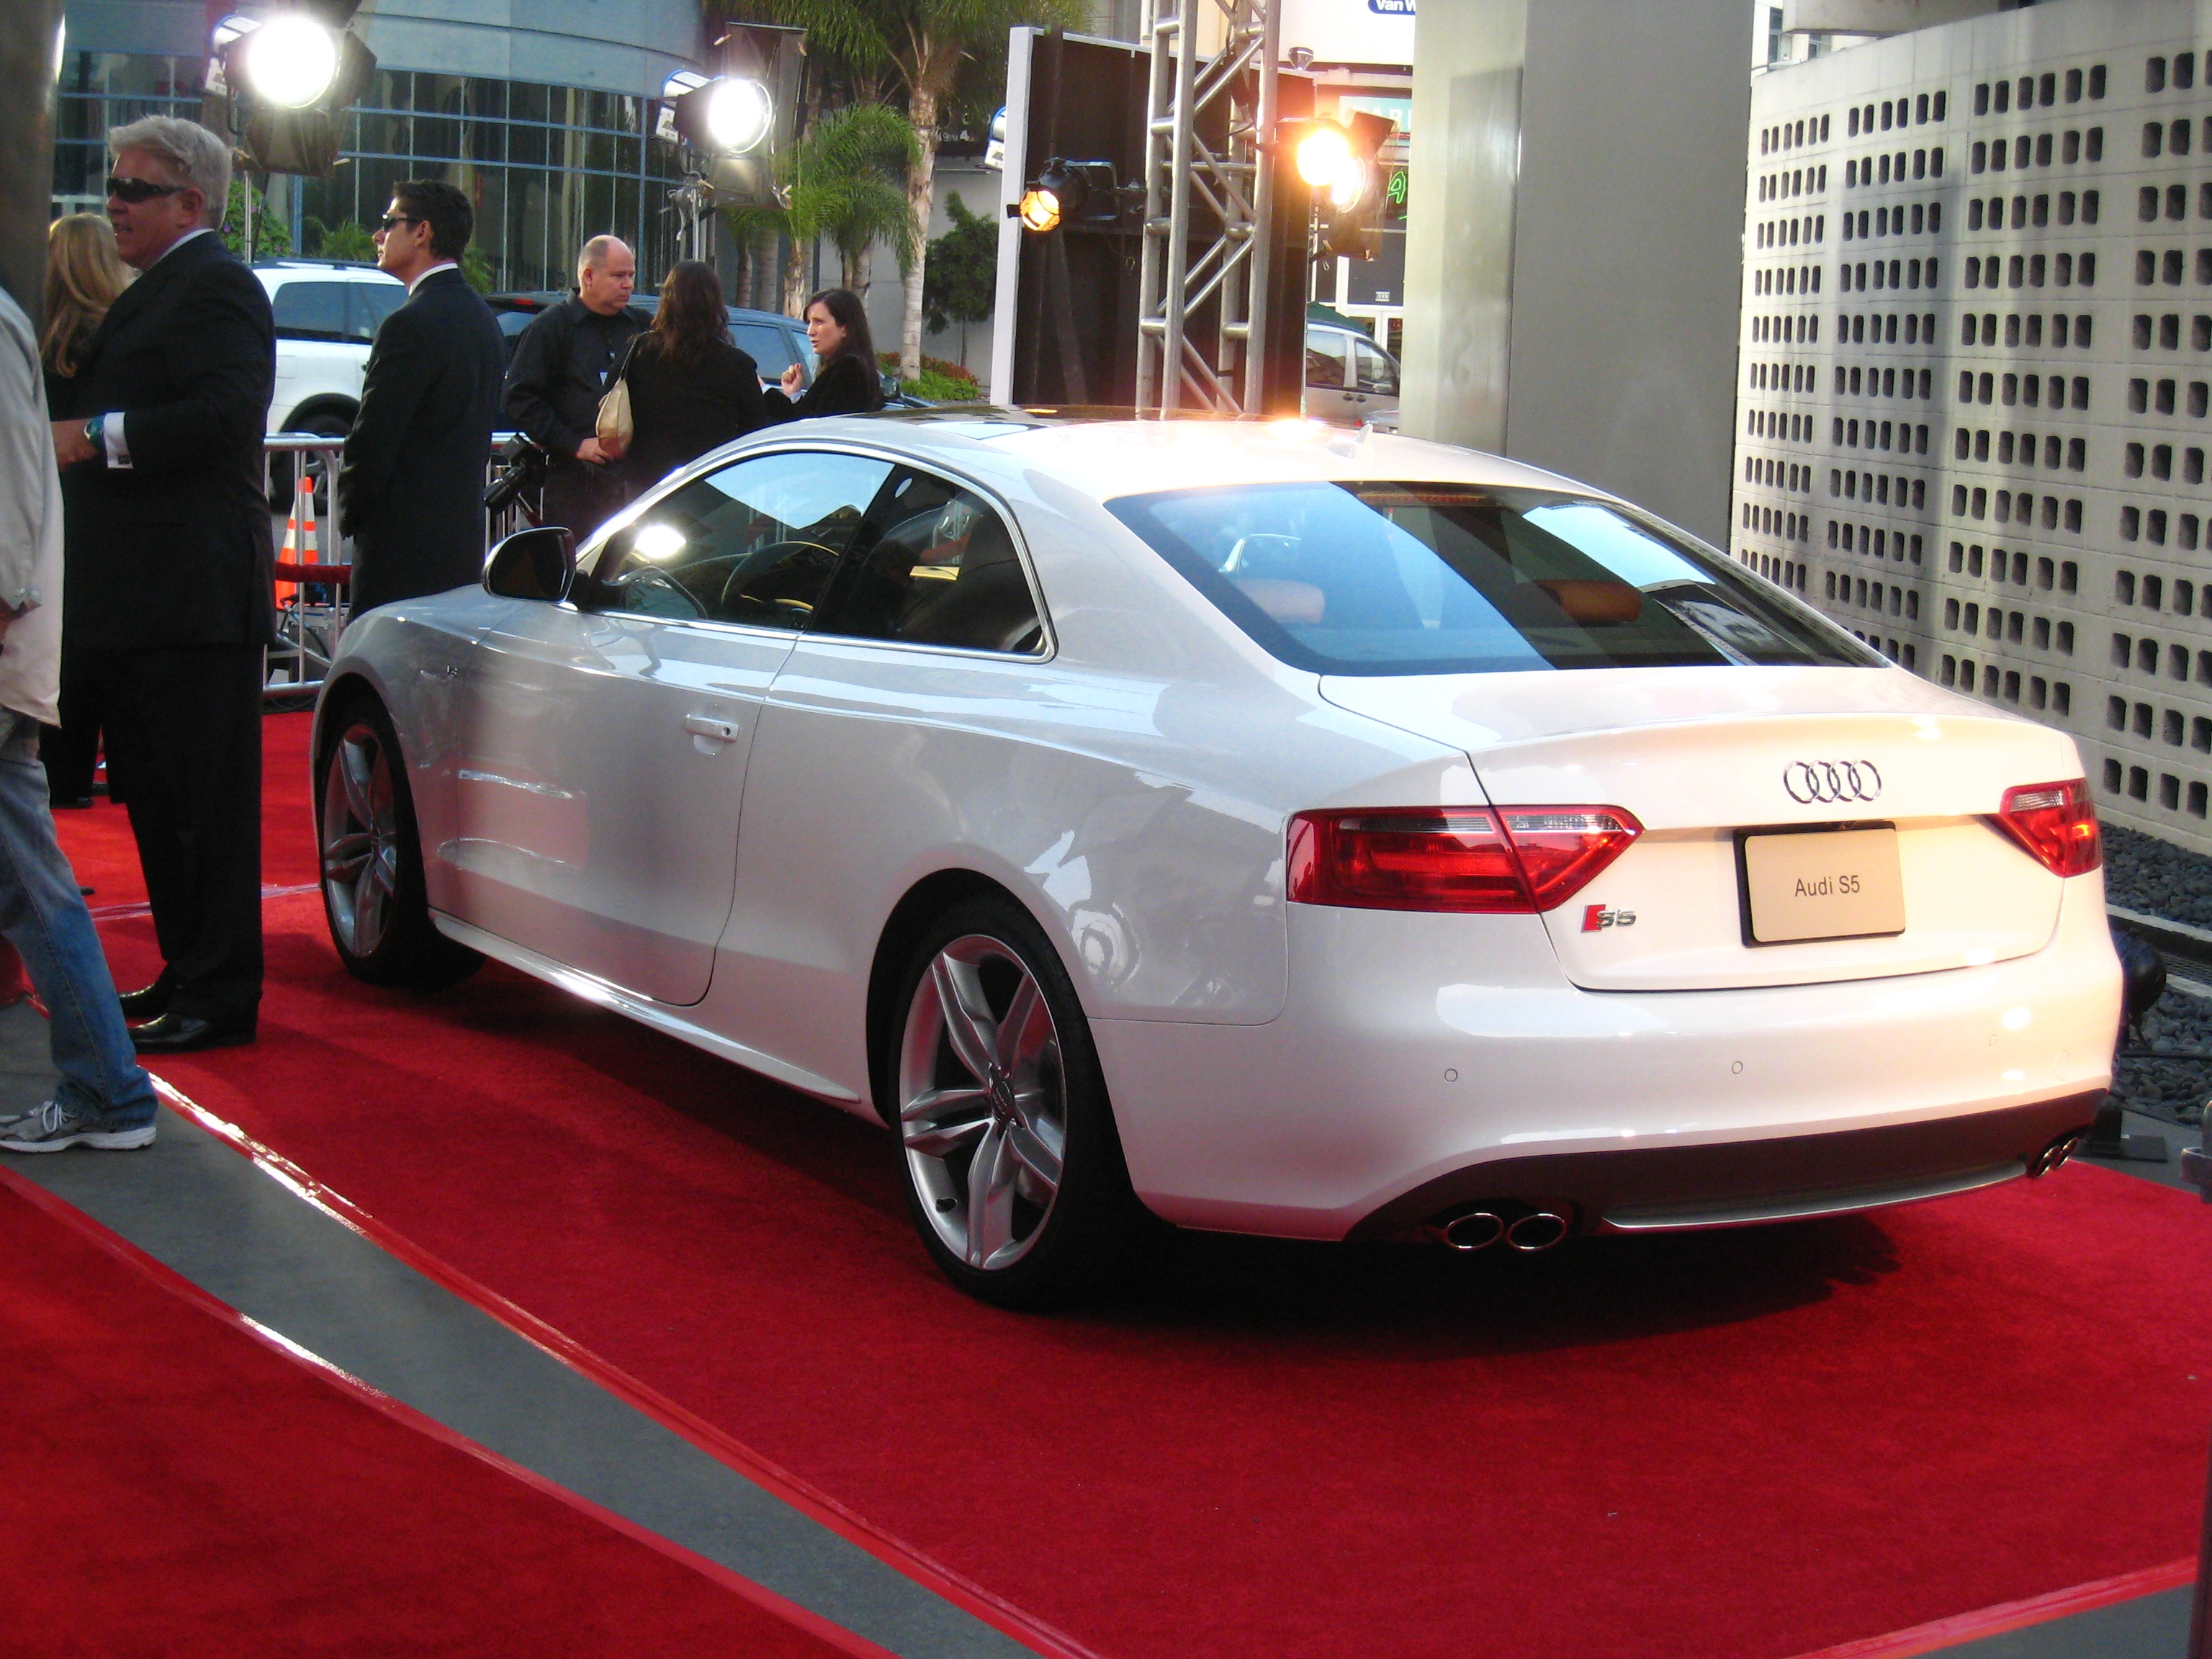 File:Audi S5 White.jpg - Wikimedia Commons